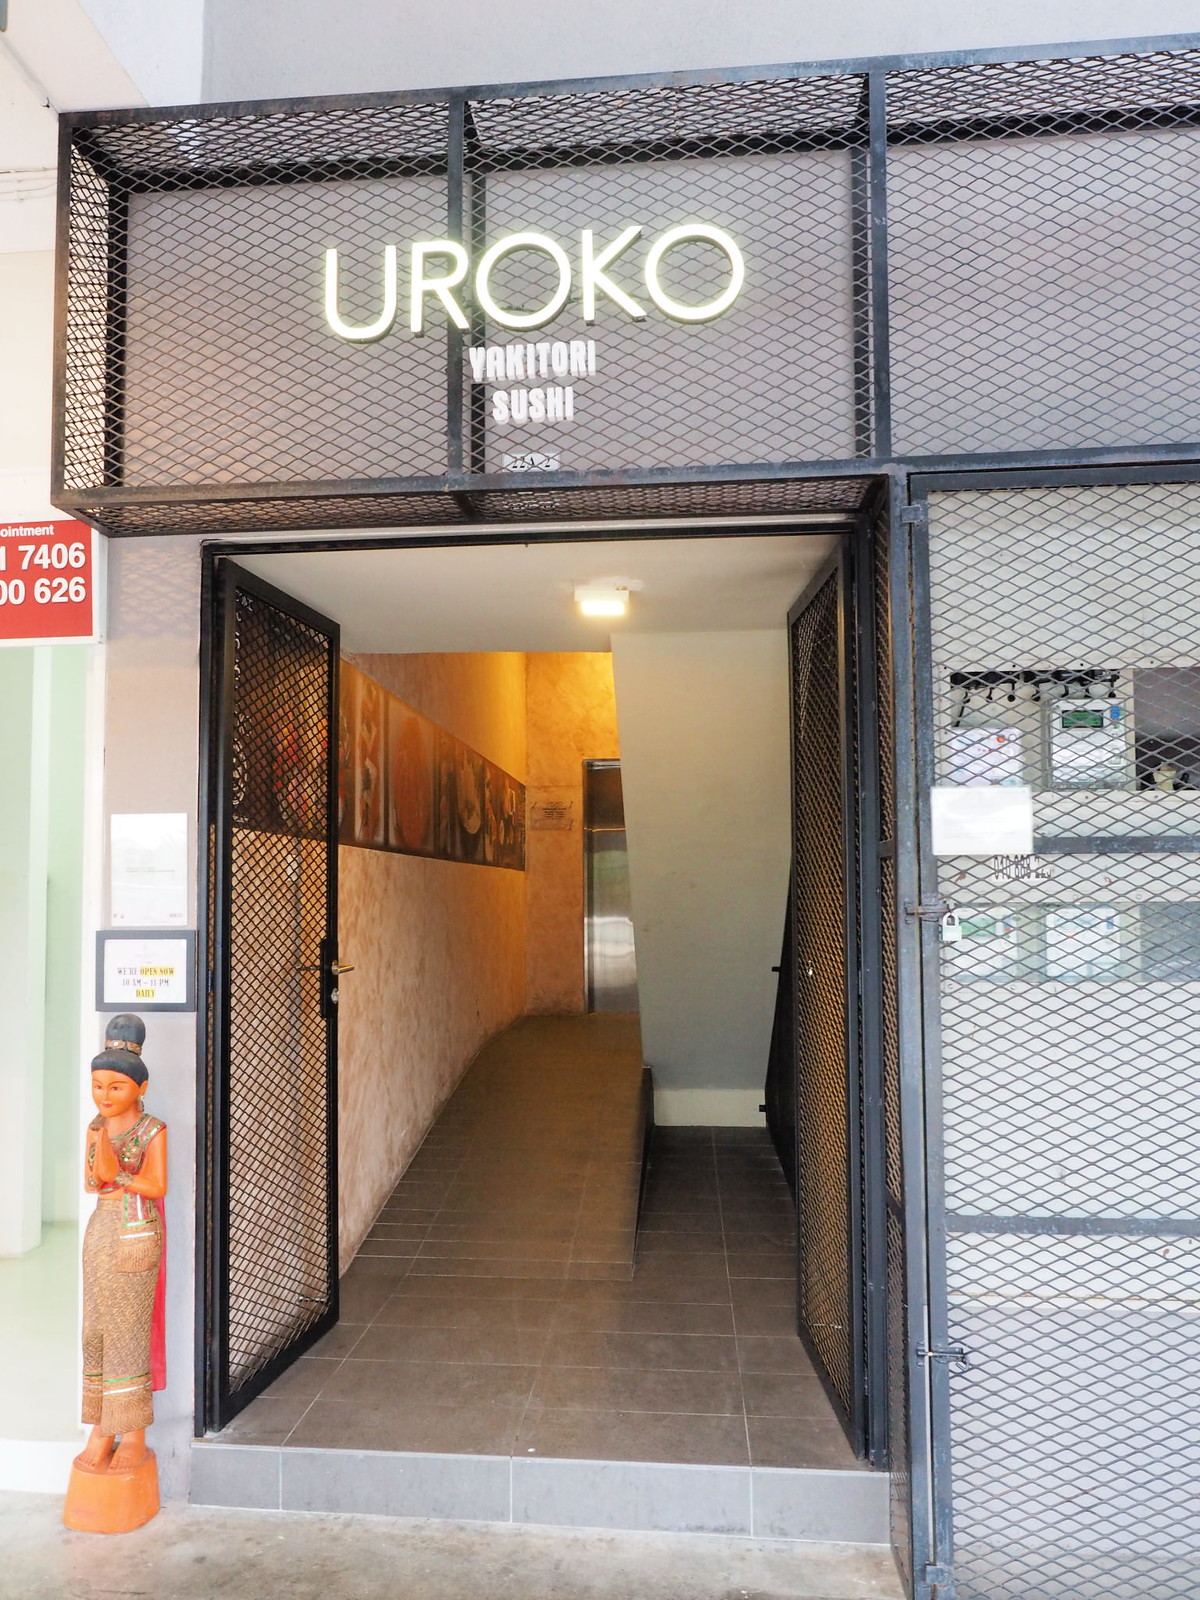 Follow the hallway to up stair to access Uroko Japanese Cuisine Restaurant